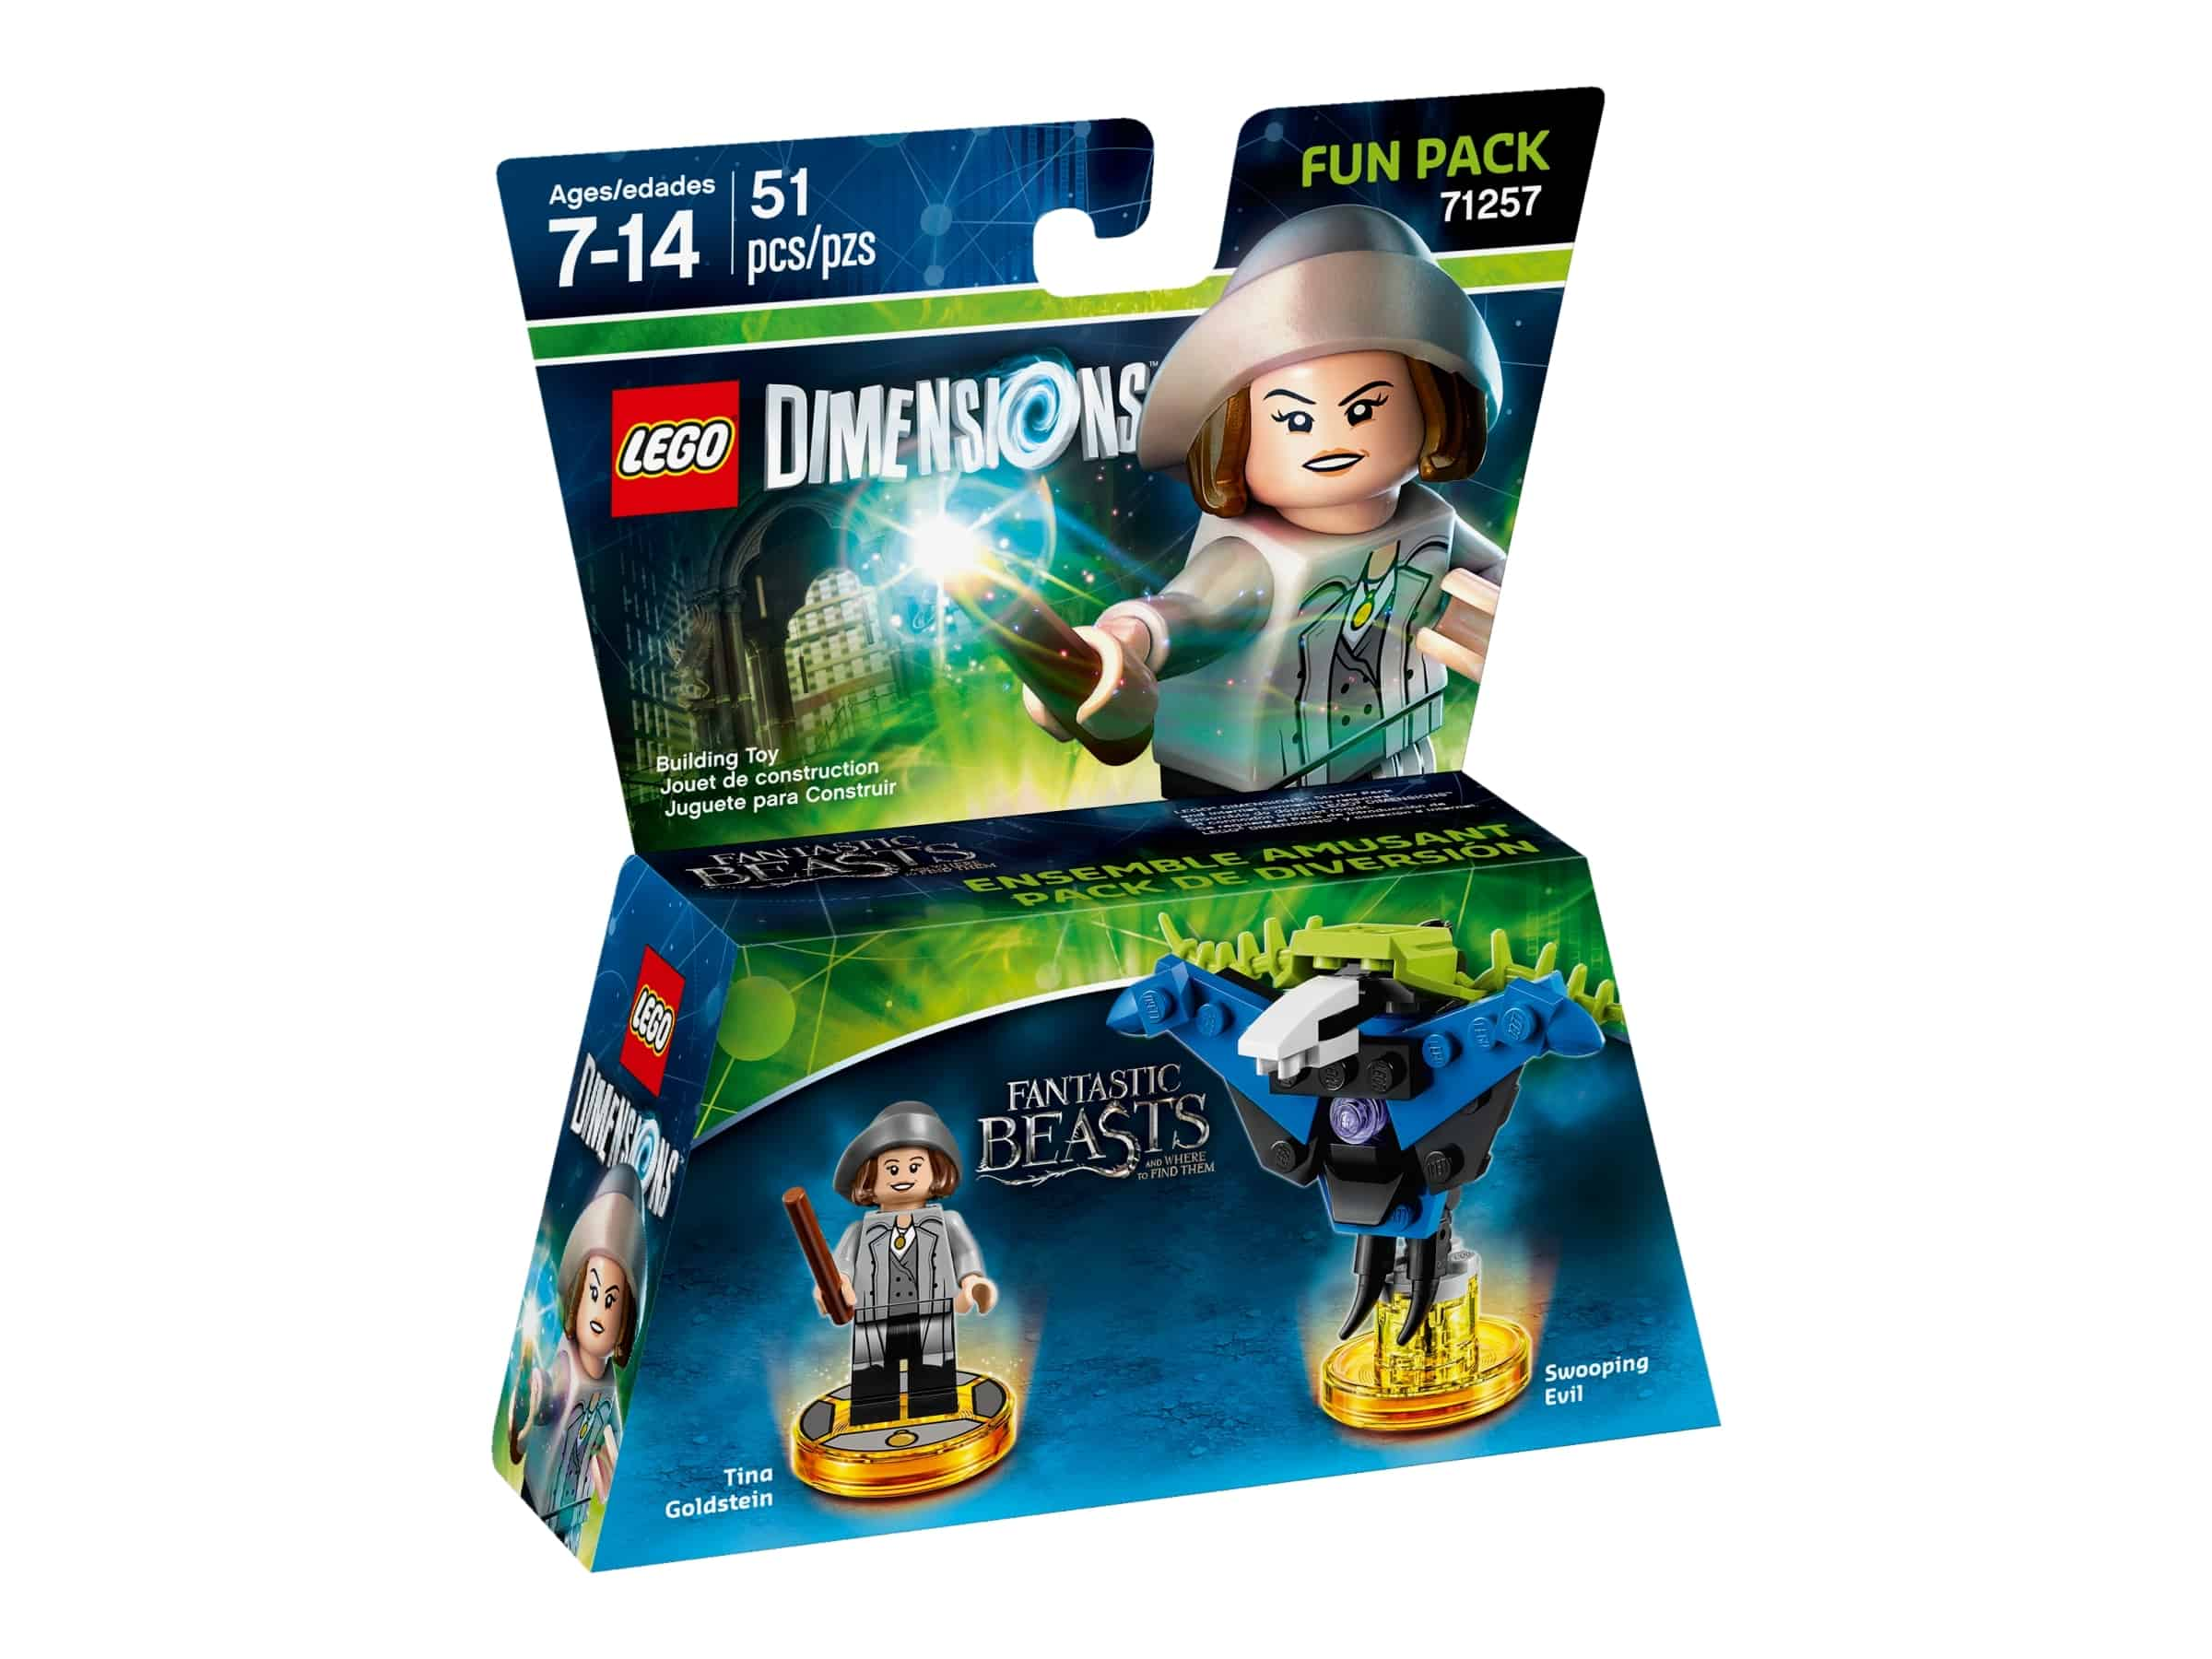 lego 71257 tina goldstein fun pack